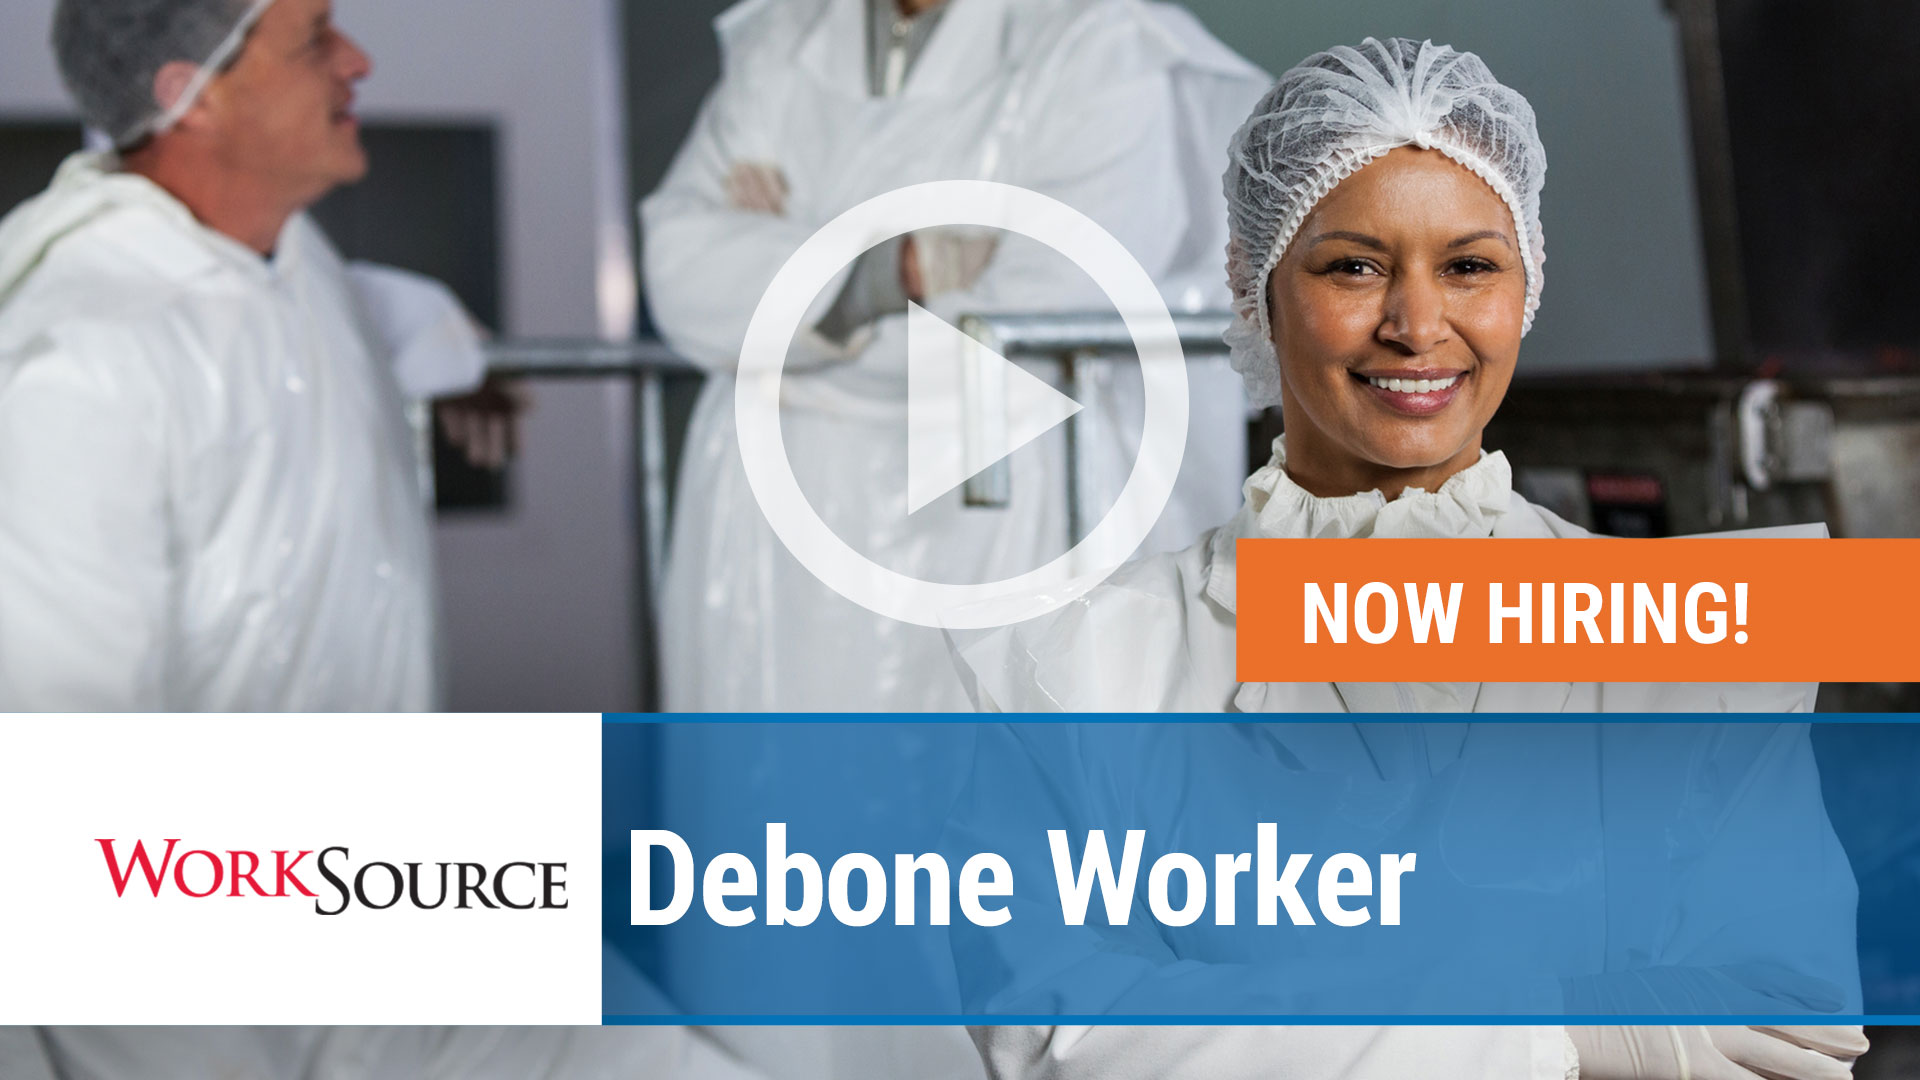 Watch our careers video for available job opening WS Debone Worker in Union Springs, AL, USA